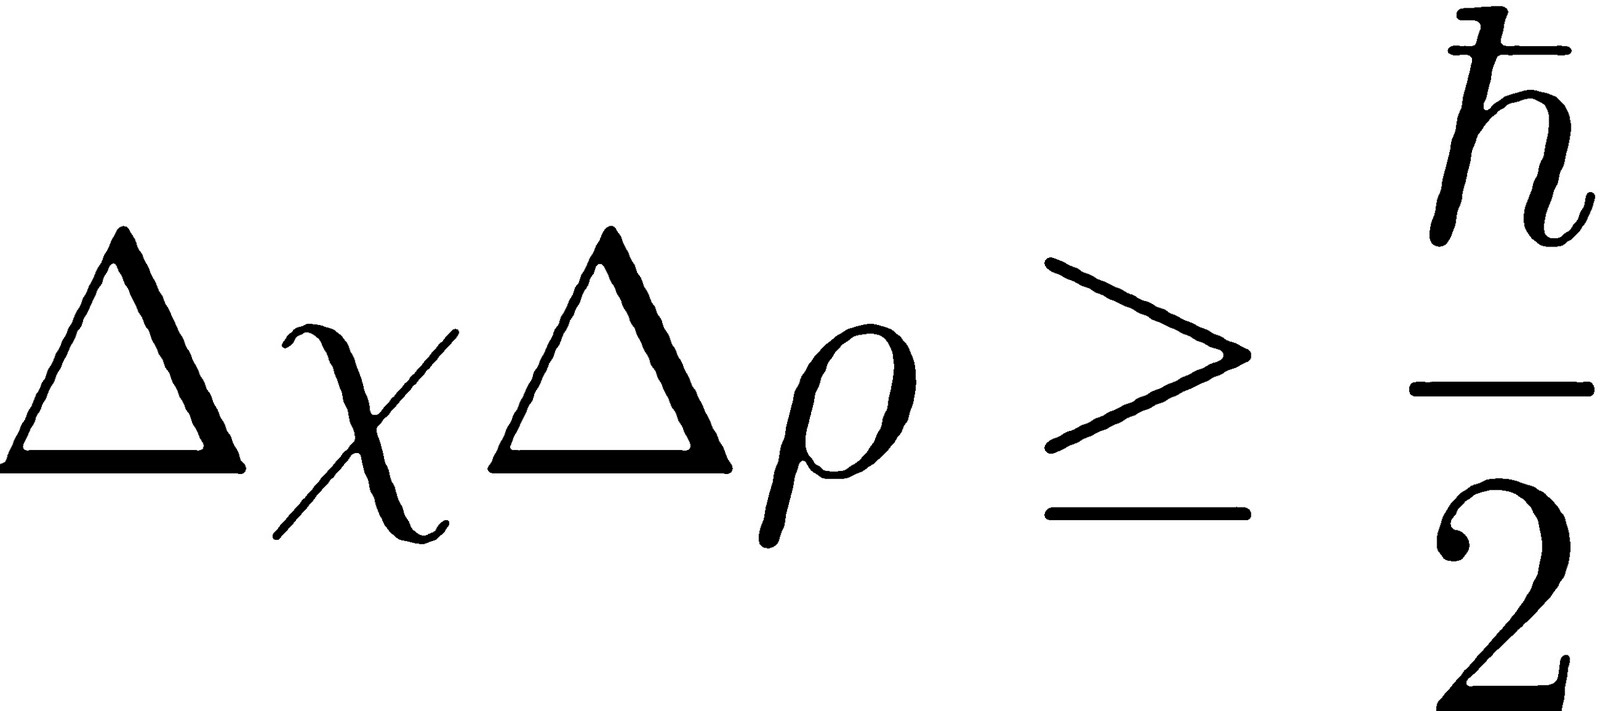 Werner Heisenberg Uncertainty Principle Equation